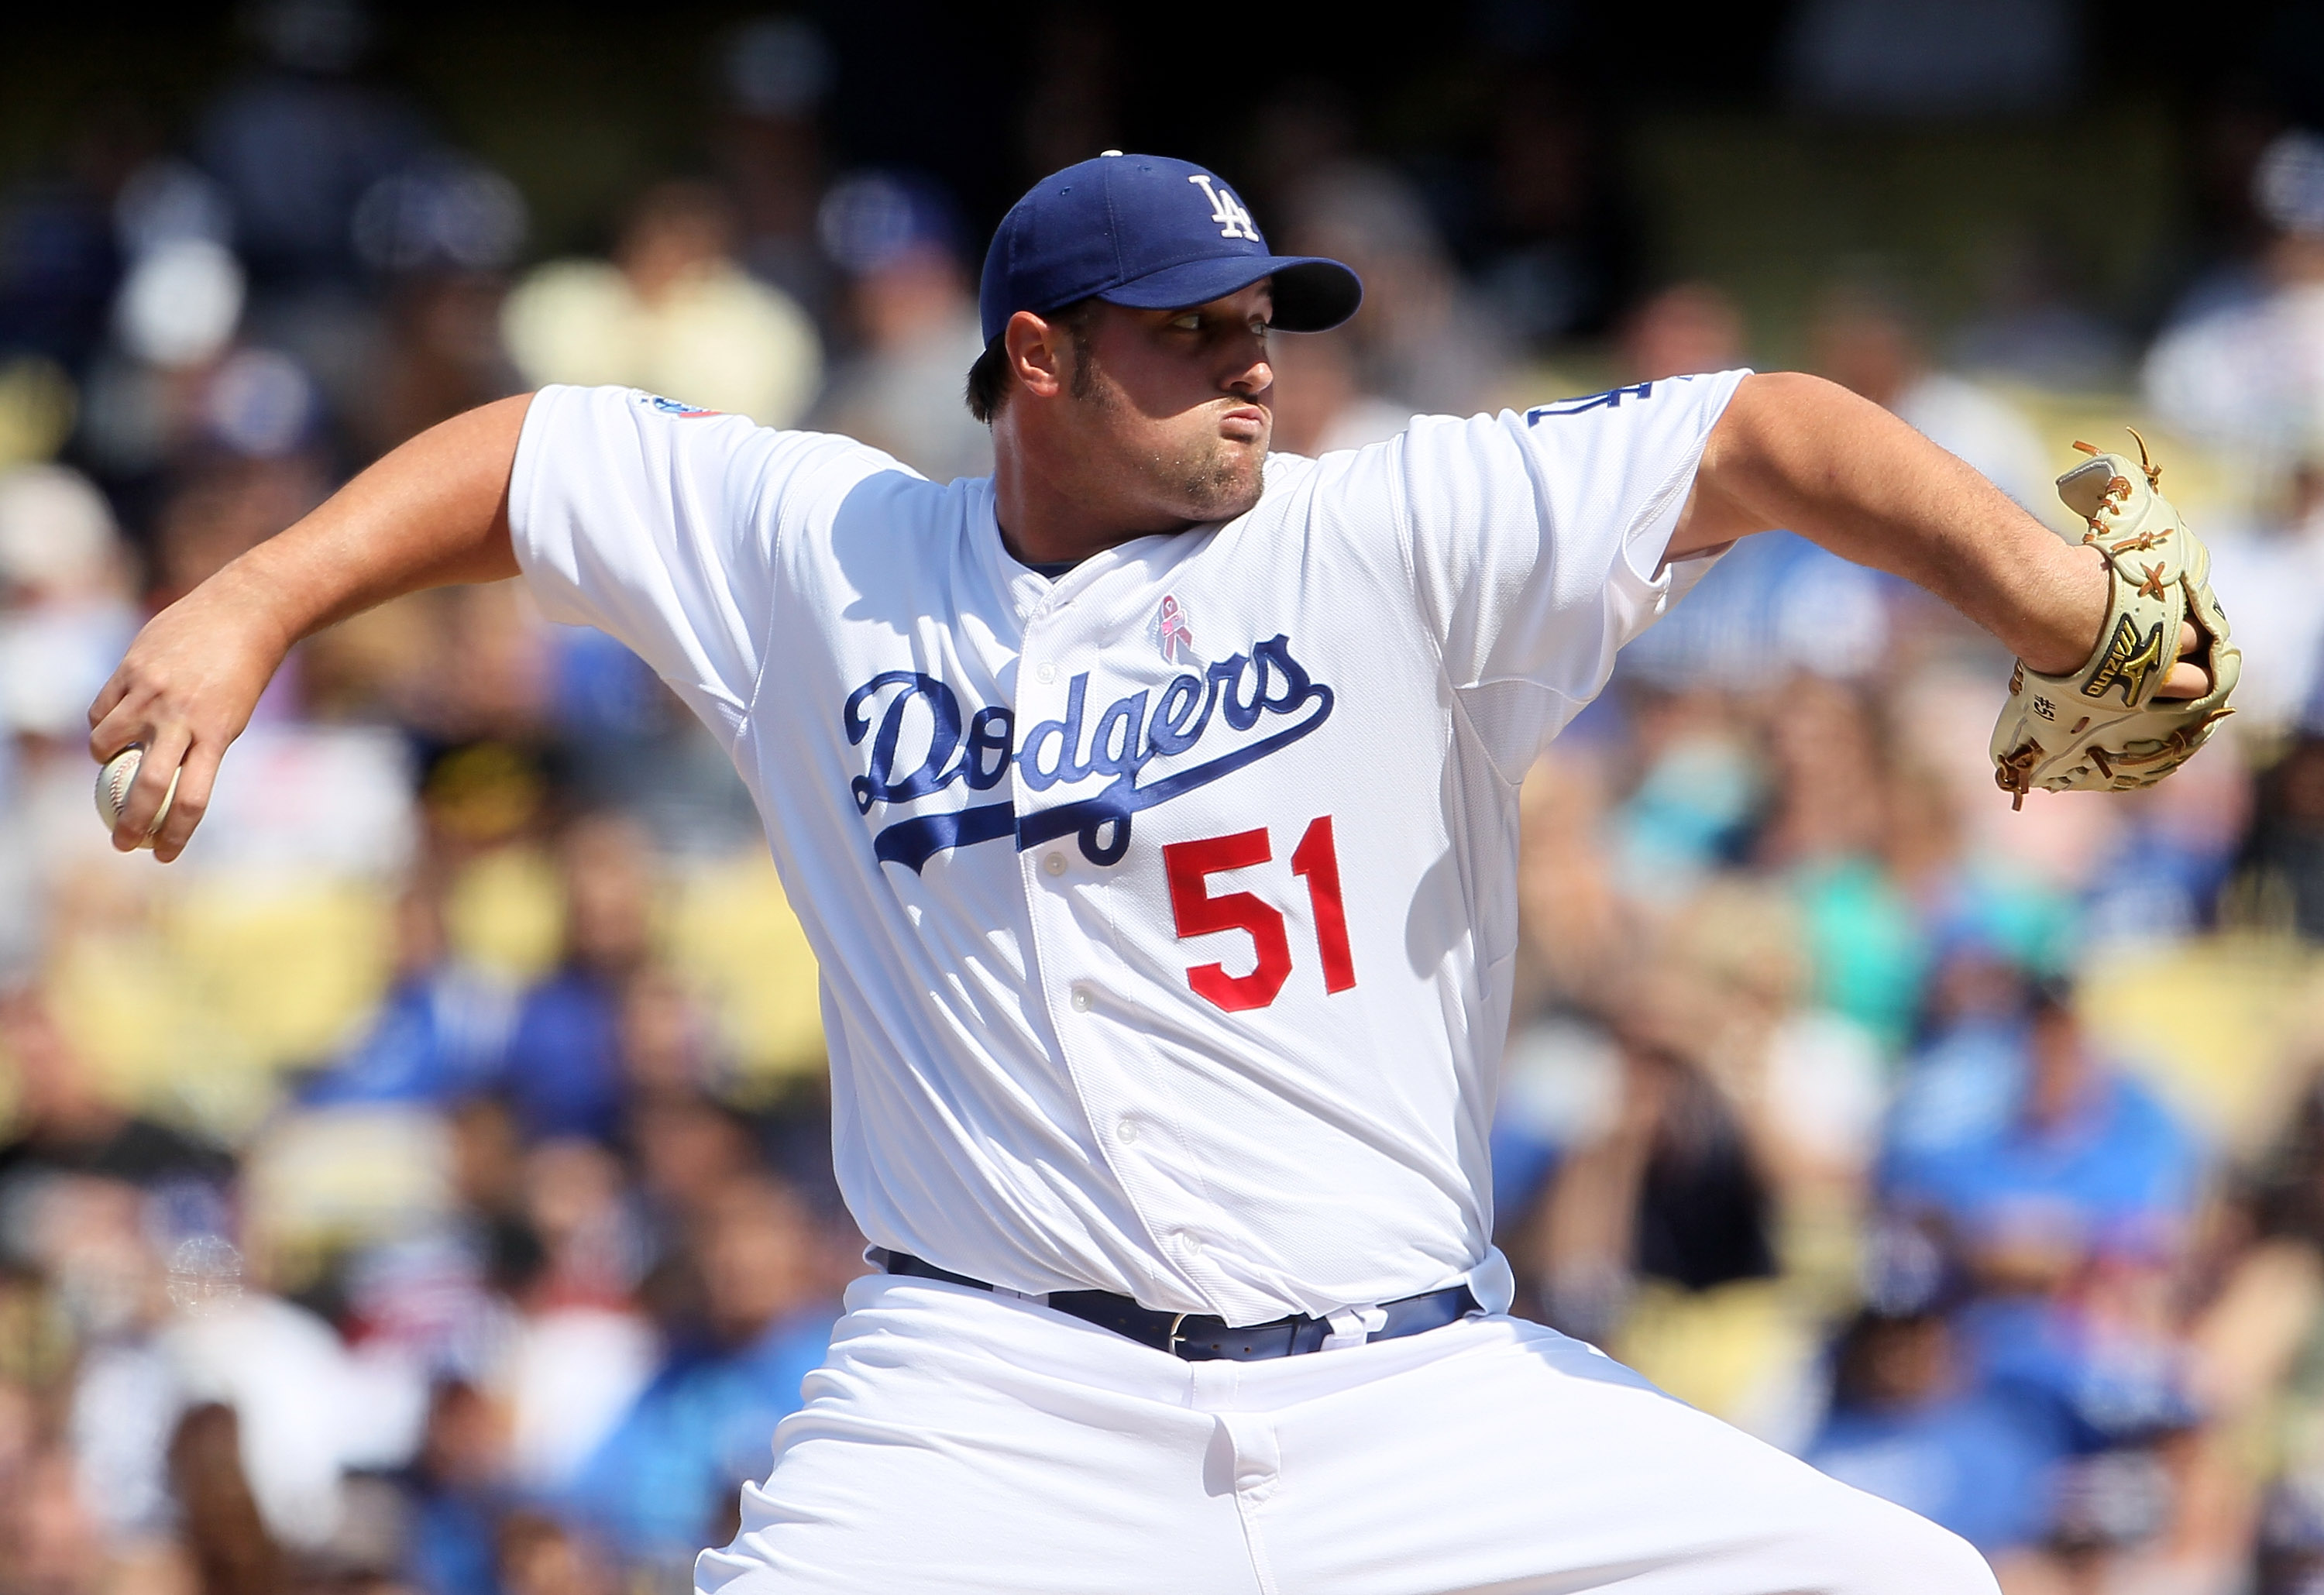 LOS ANGELES, CA - MAY 09:  Jonathan Broxton #51 of the Los Angeles Dodgers pitches against the Colorado Rockies in the ninth inning at Dodger Stadium on May 9, 2010 in Los Angeles, California. The Dodgers defeated the Rockies 2-0.  (Photo by Jeff Gross/Ge